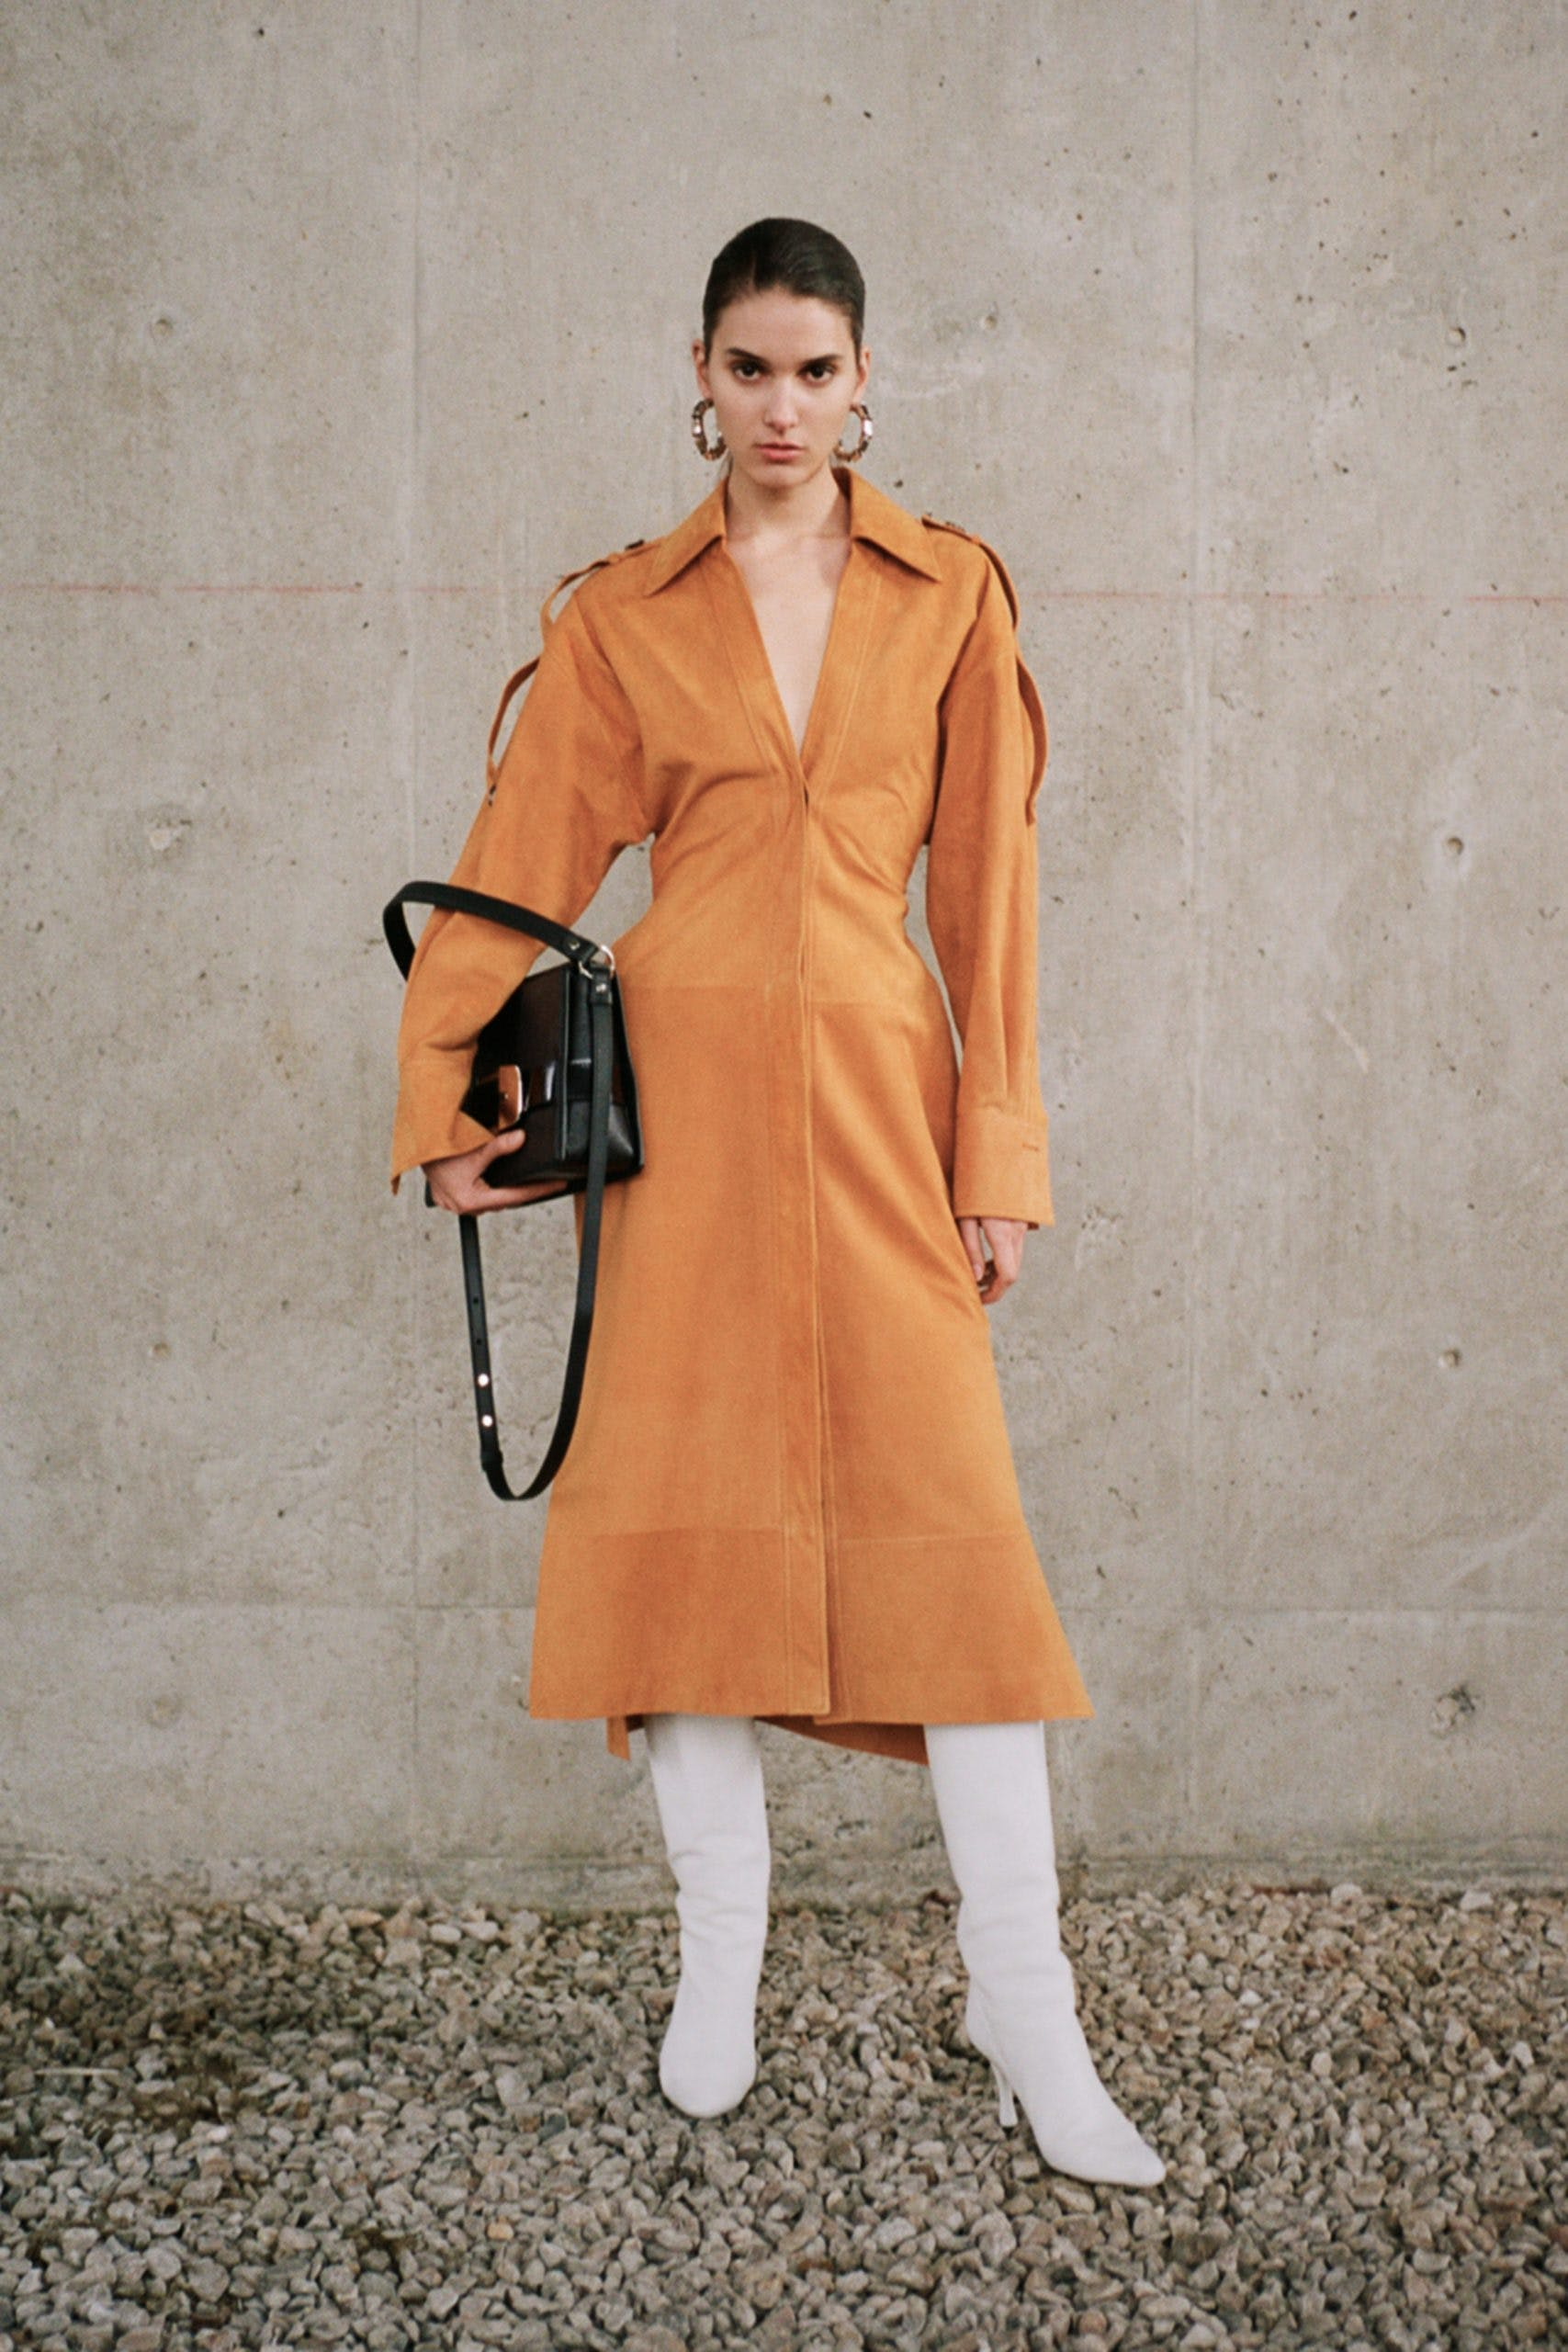 proenza schouler pf20 orange collar dress white high leather boots